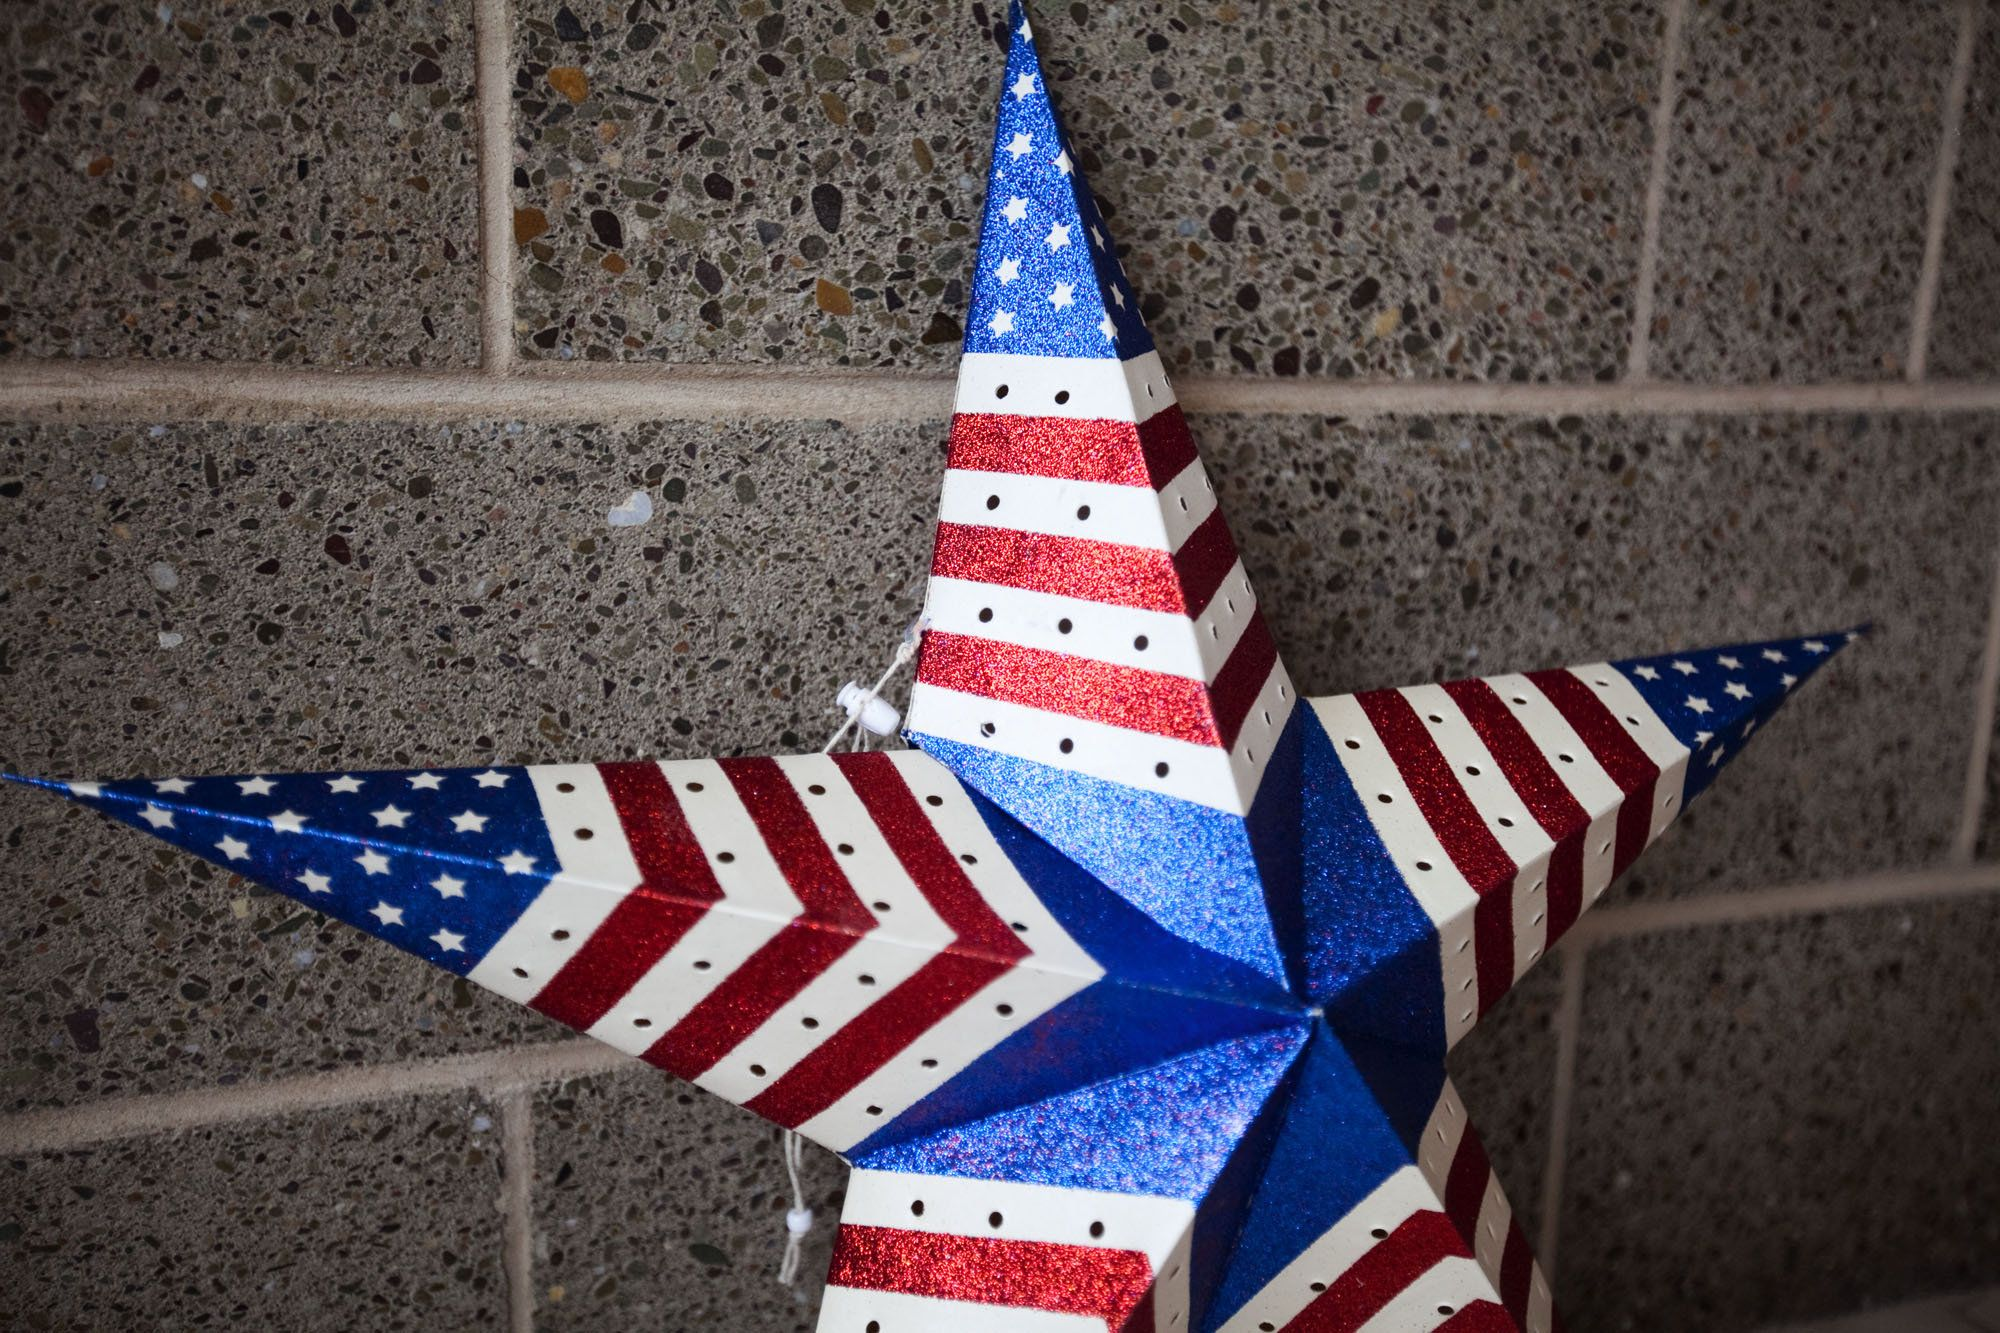 Beautiful Patriotic Decorations Part - 8: Exterior Patriotic Decorations With An Amazing Star The Occasional Usage Of Patriotic  Decorations